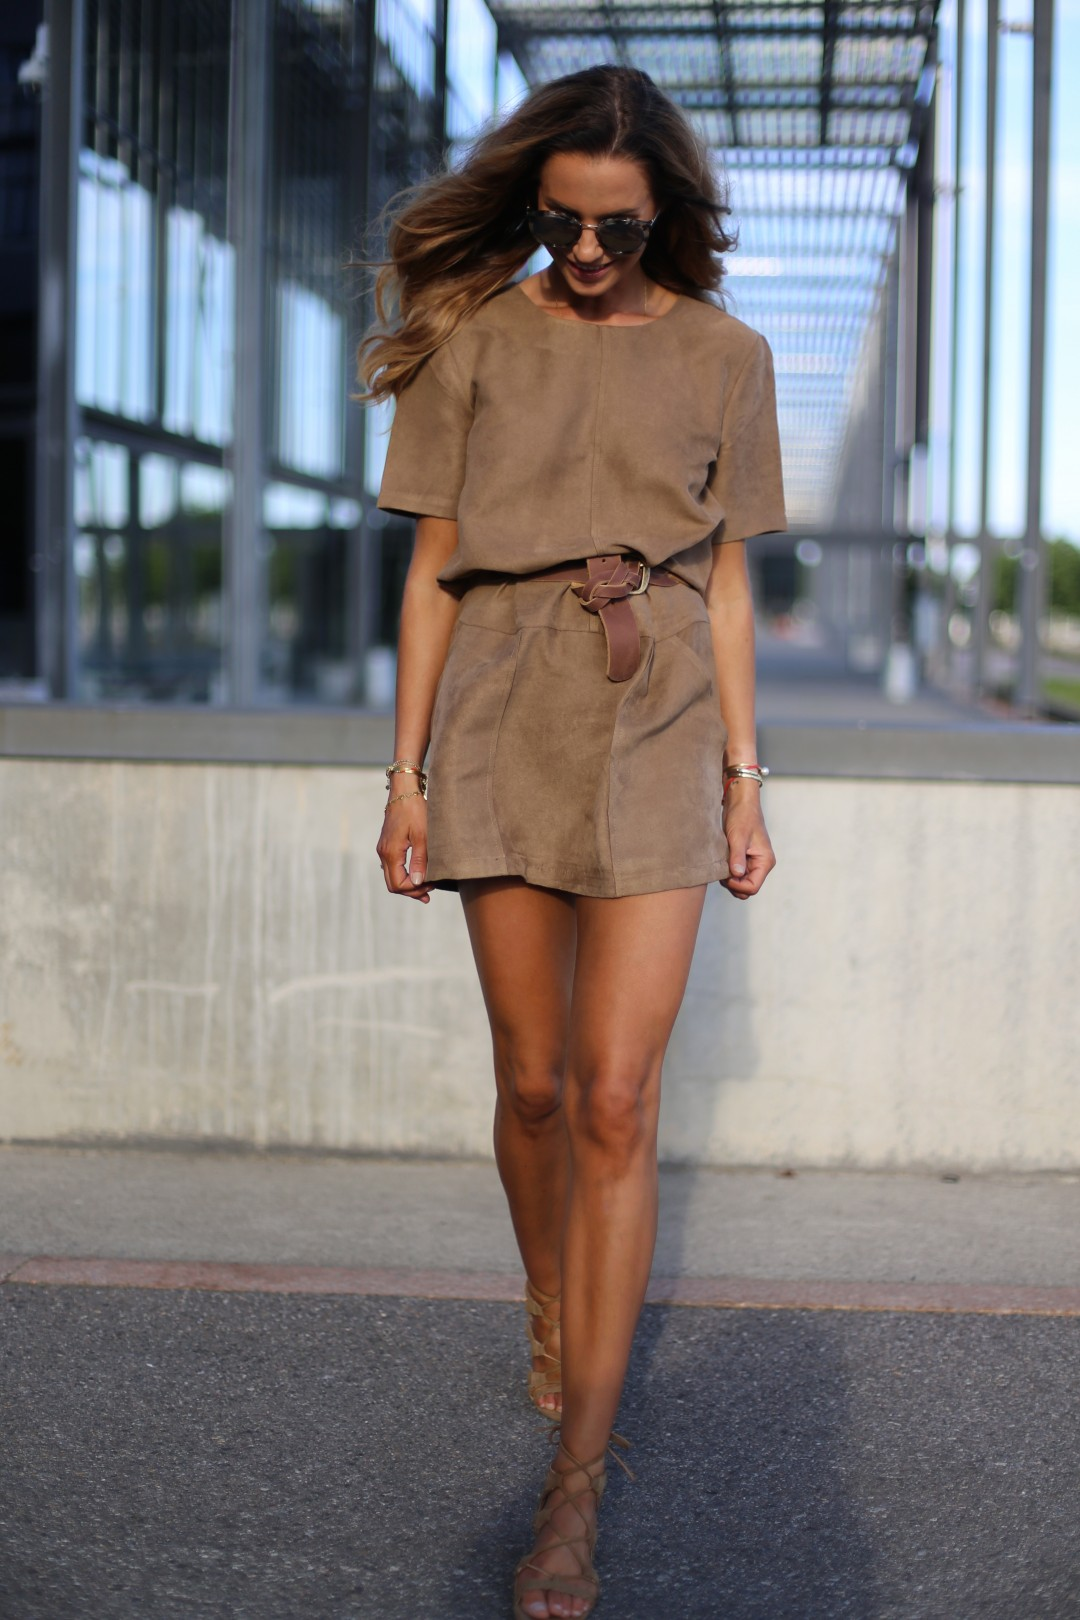 Go a little out of your comfort zone and dare to wear suede this September! As demonstrated by Benedichte, wearing suede is a sure fire way to get instant sophistication! Pair a dress with a belt and nude heels to get this fabulous style. Dress: Hallhuber, Sandals: Zalando.